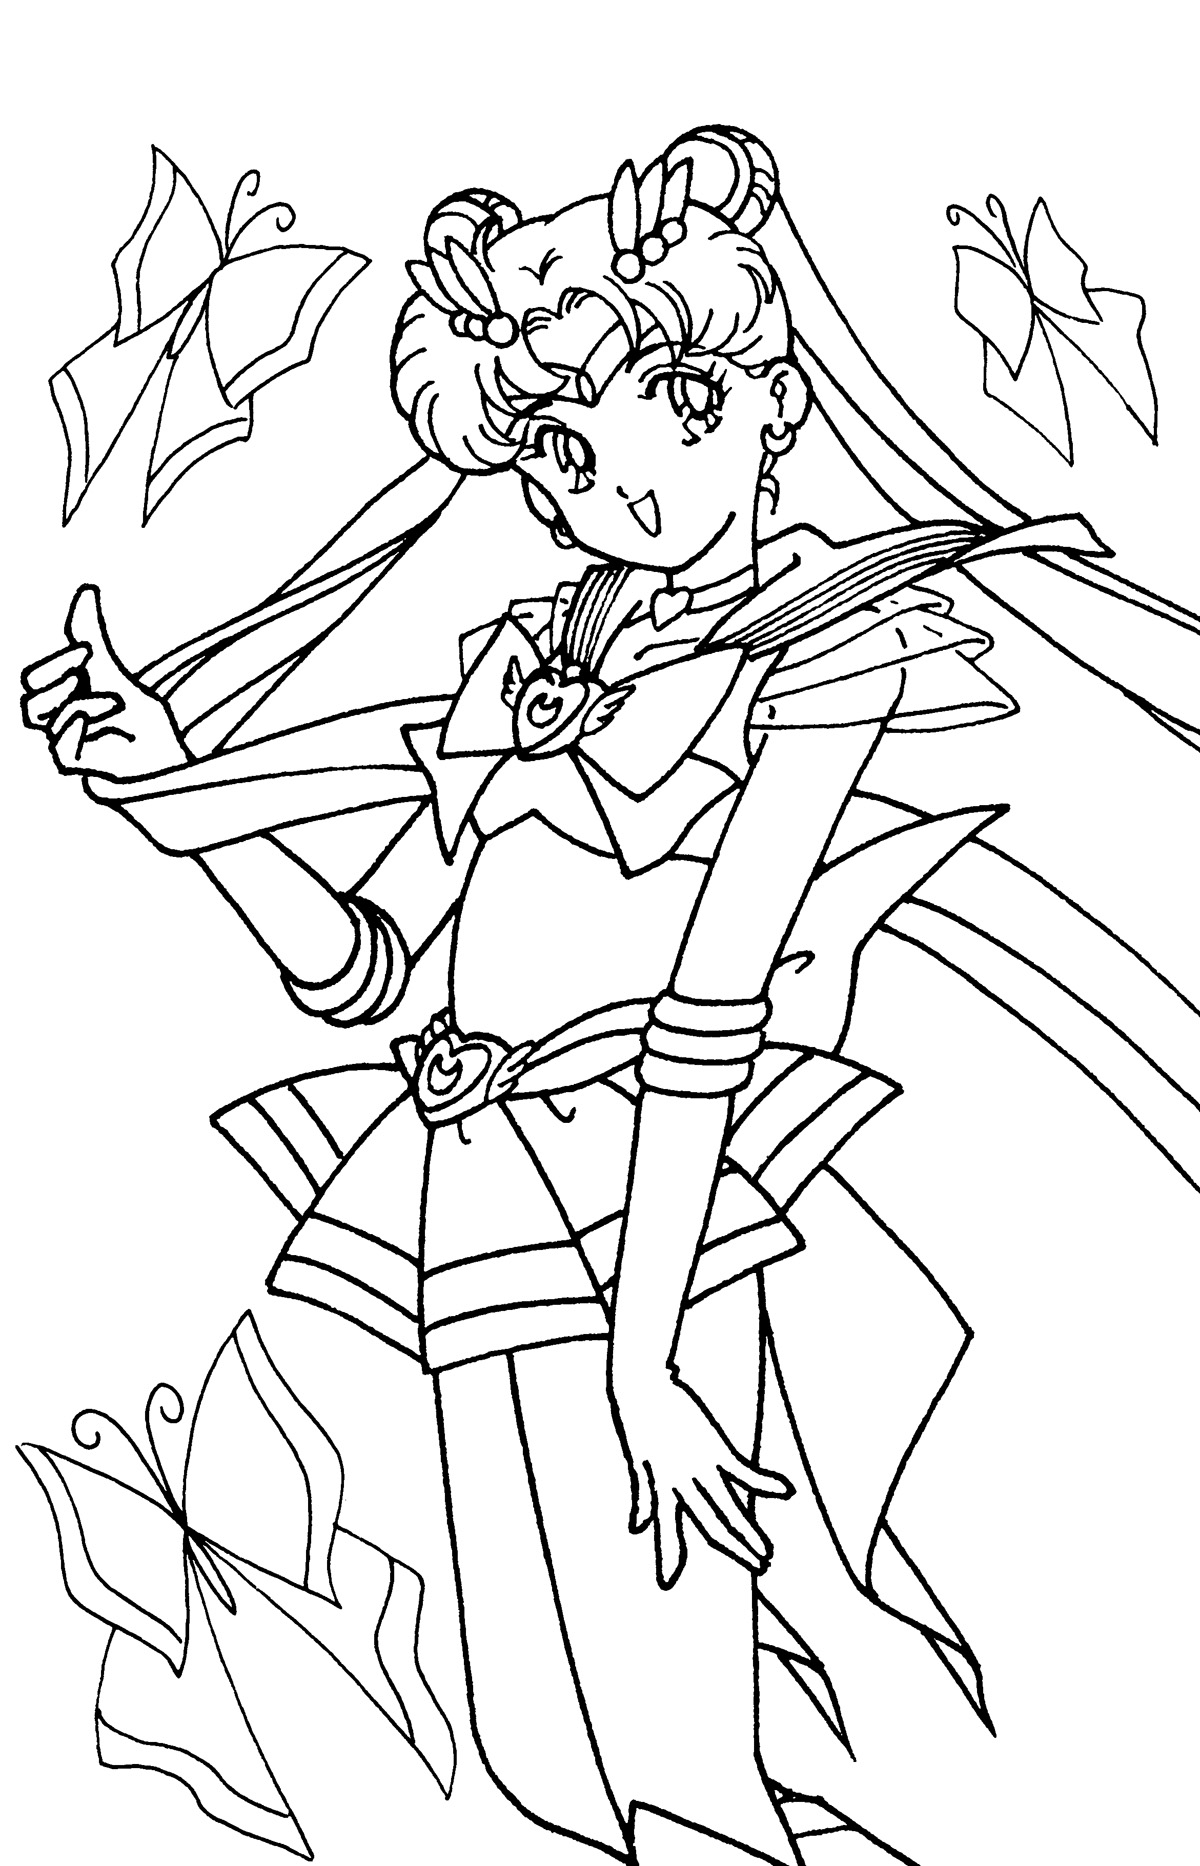 Sailor Moon Manga Coloring Pages | Coloring Pages